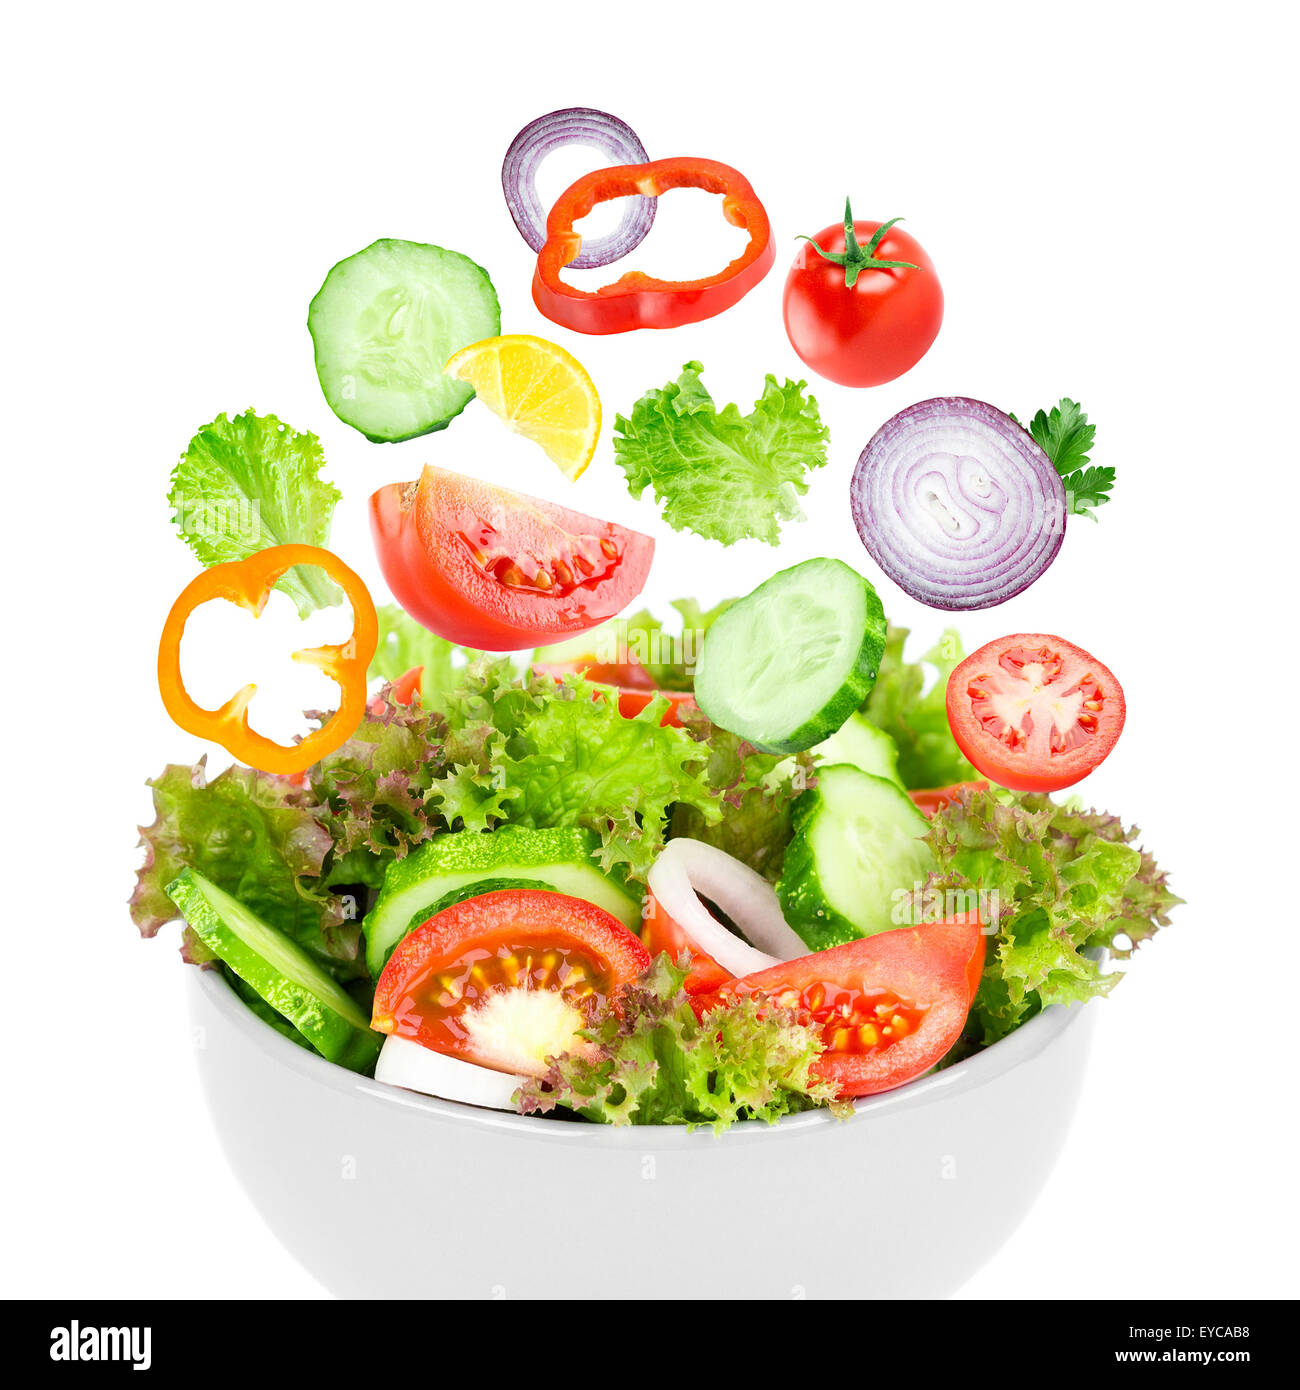 Fresh Salad Mixed Falling Vegetables In Bowl On White